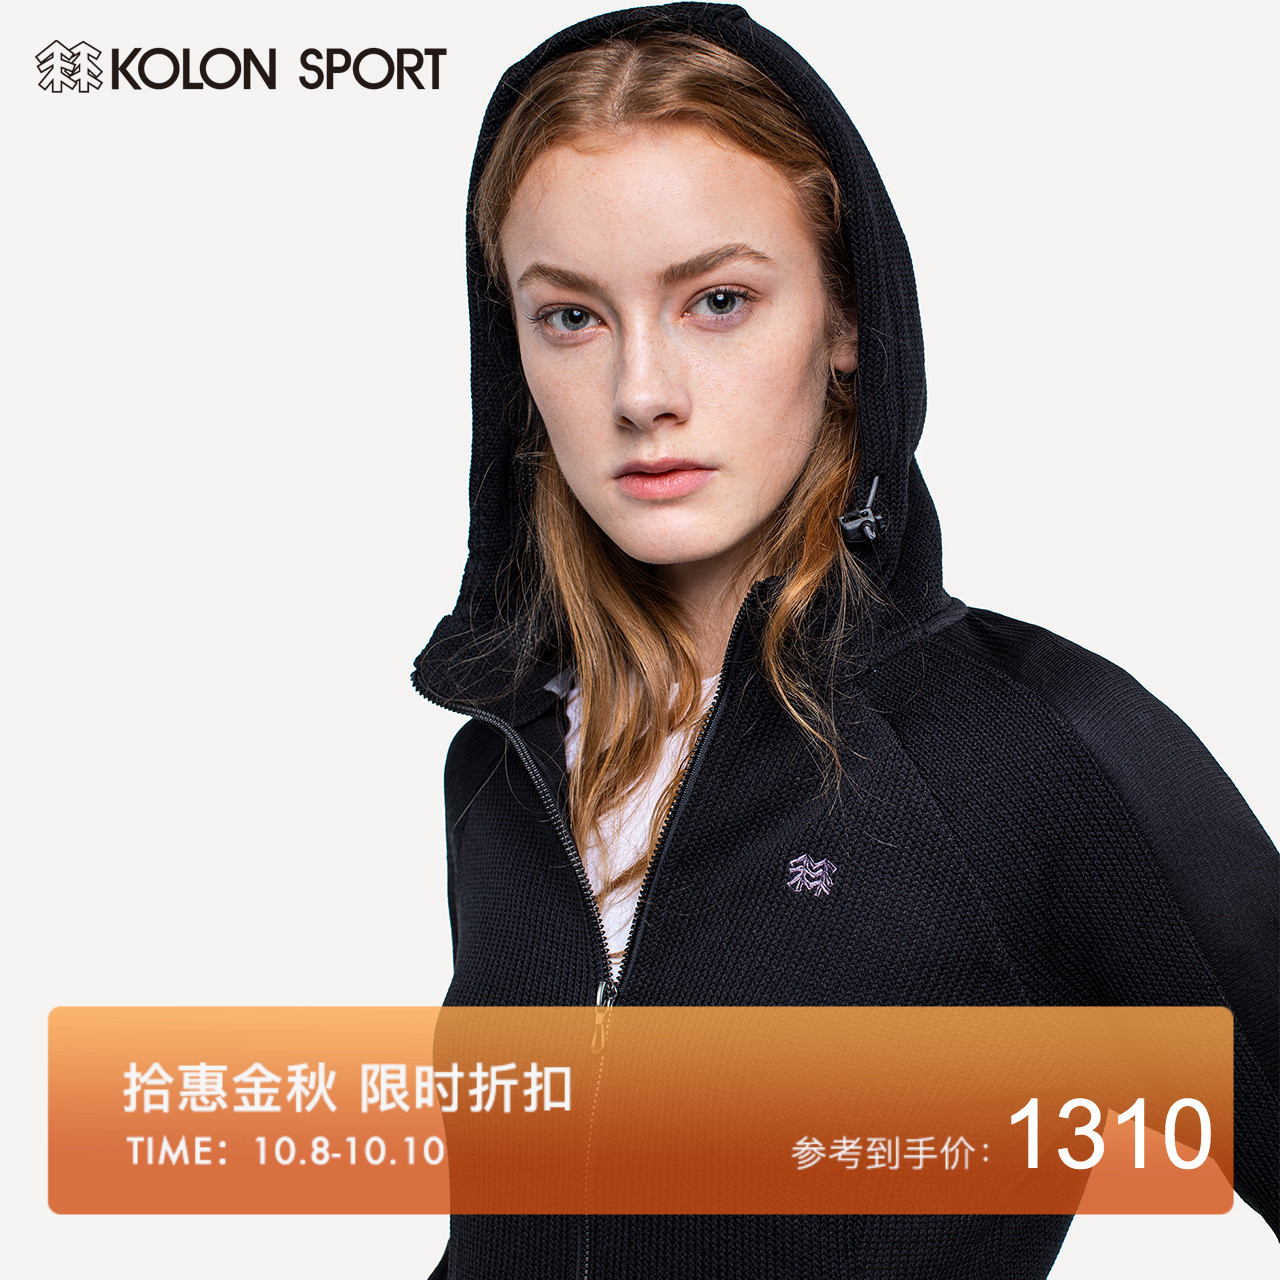 KOLONSPORT Kolon women's knitted zipper sports jacket Korea outdoor sports Tide brand autumn jacket